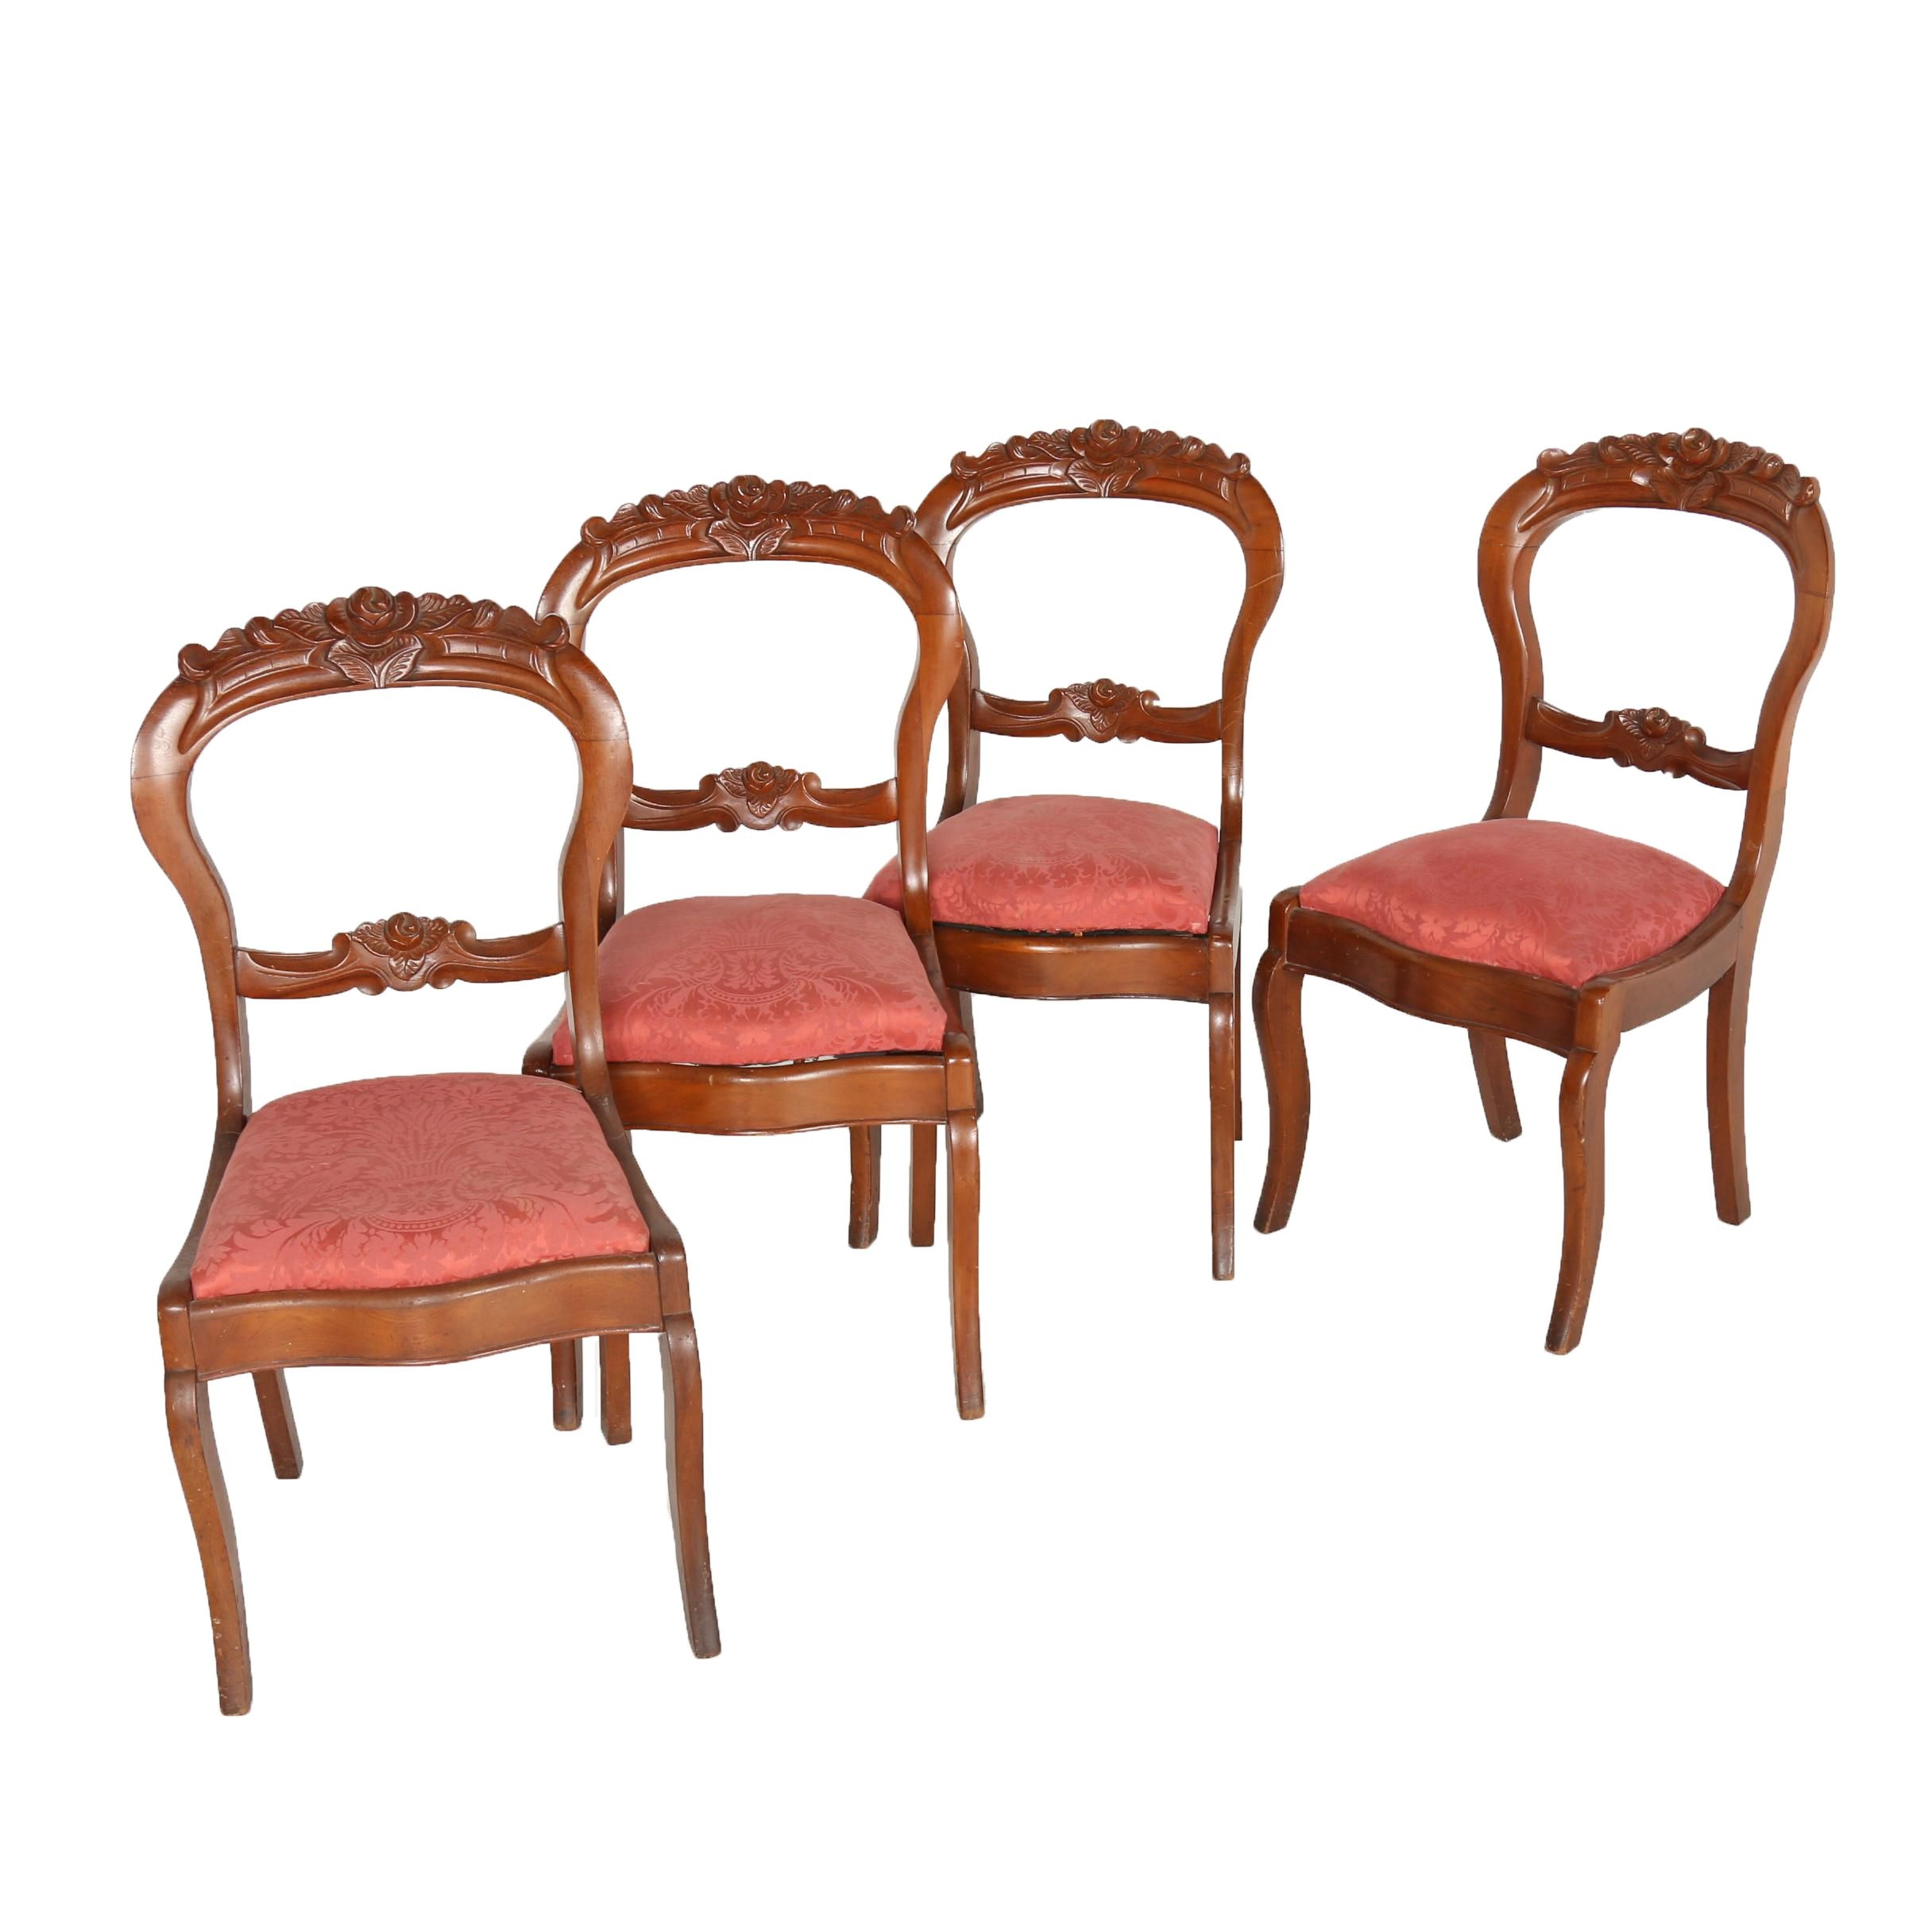 Vintage Victorian Style Dining Chairs